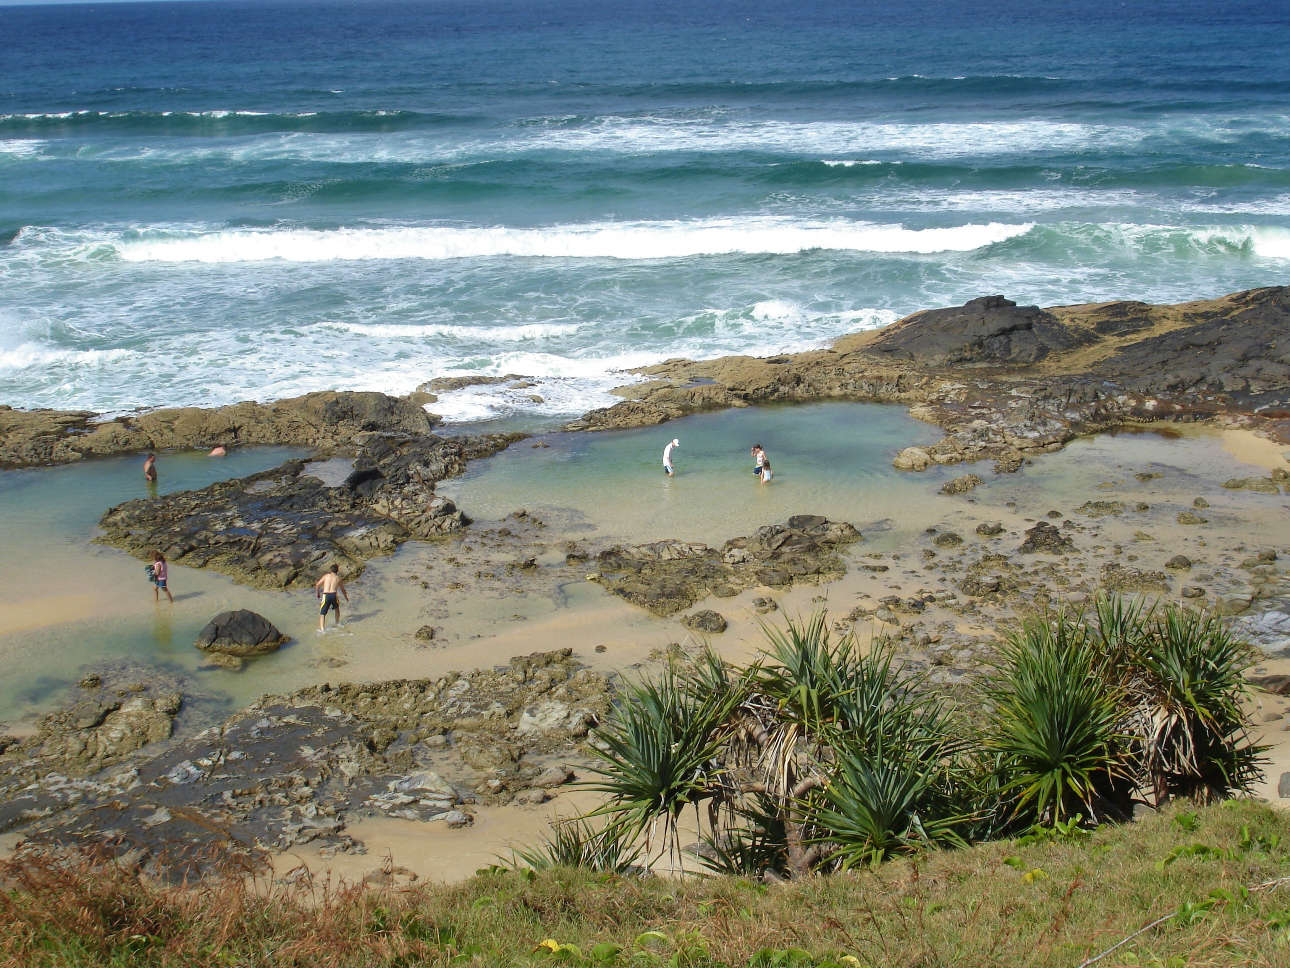 Champagne Pools on Fraser Island offer a chance for a protected swim